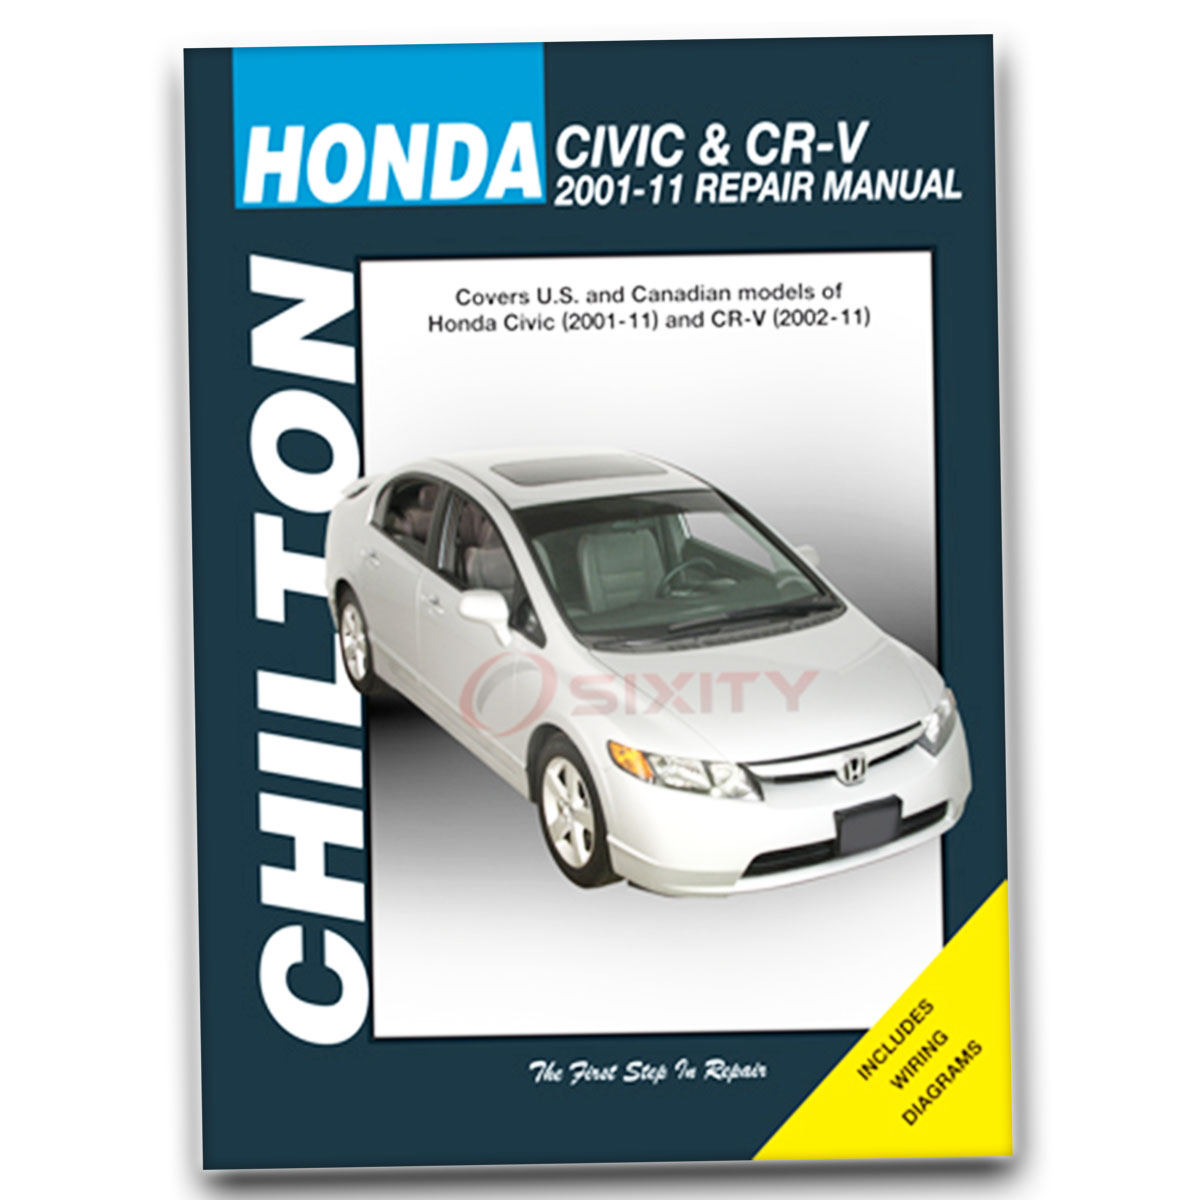 honda civic chilton repair manual hx mugen si dx lx hybrid gx value rh ebay com 2001 honda civic ex repair manual honda civic 2001 repair manual free